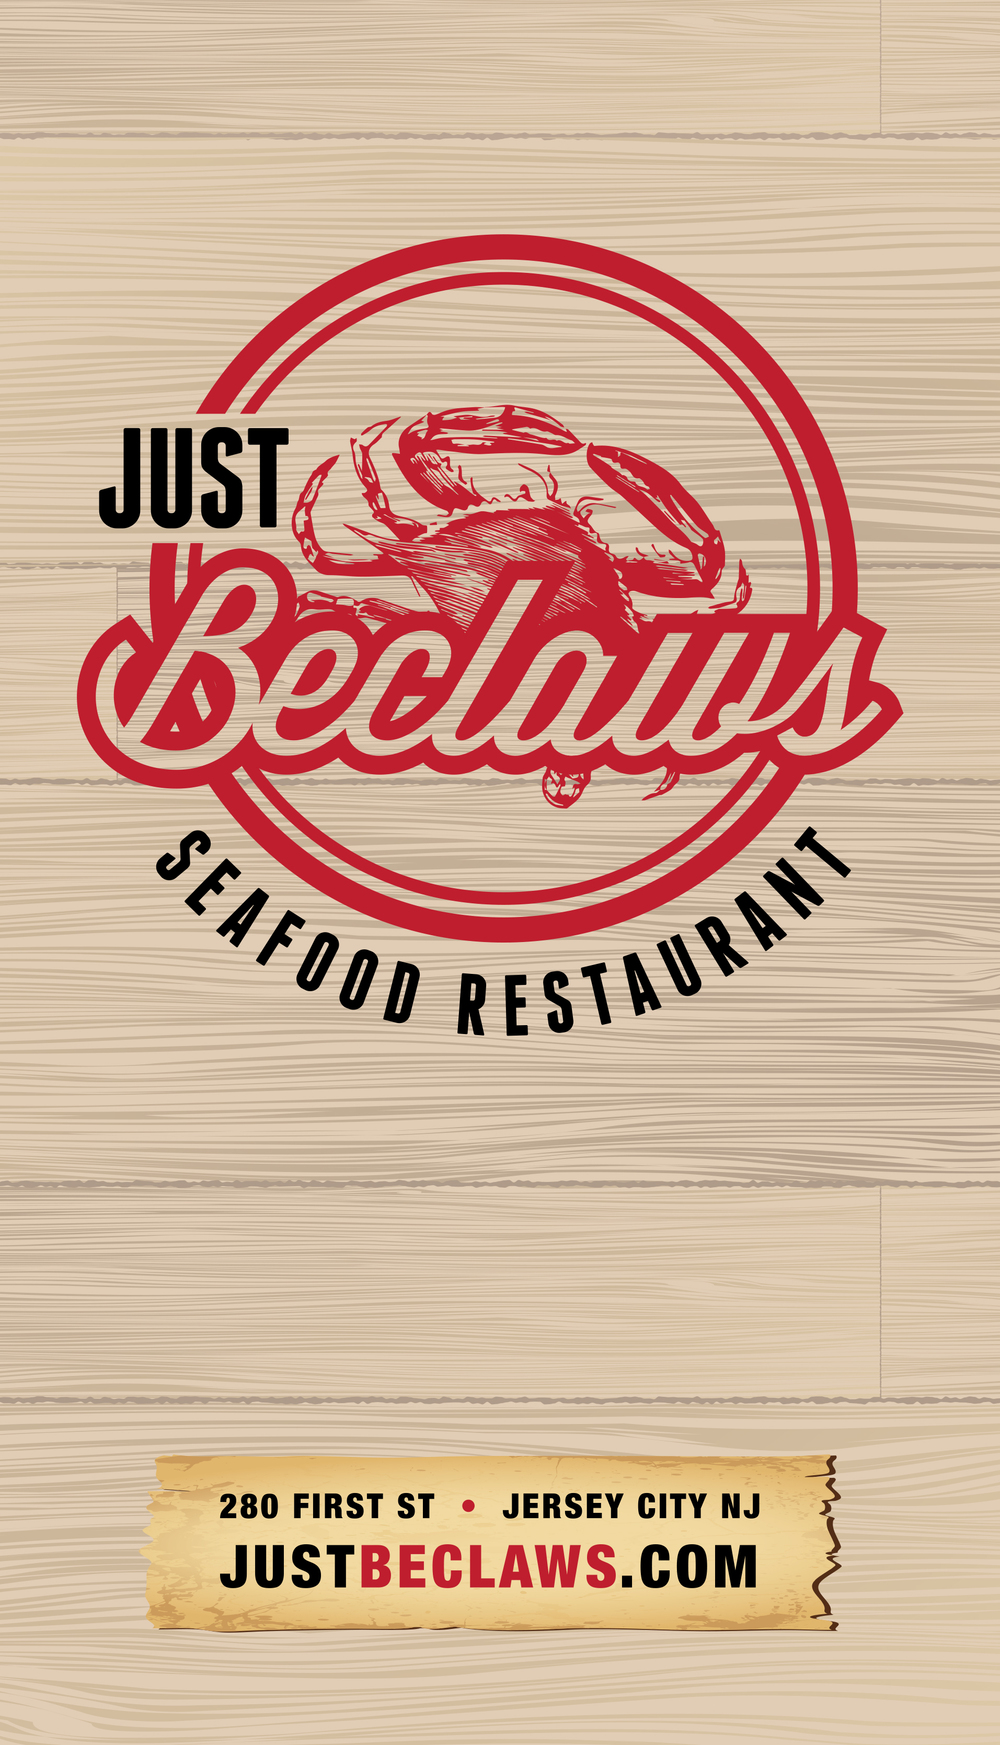 Just Beclaws Menu FINAL BACK.jpg